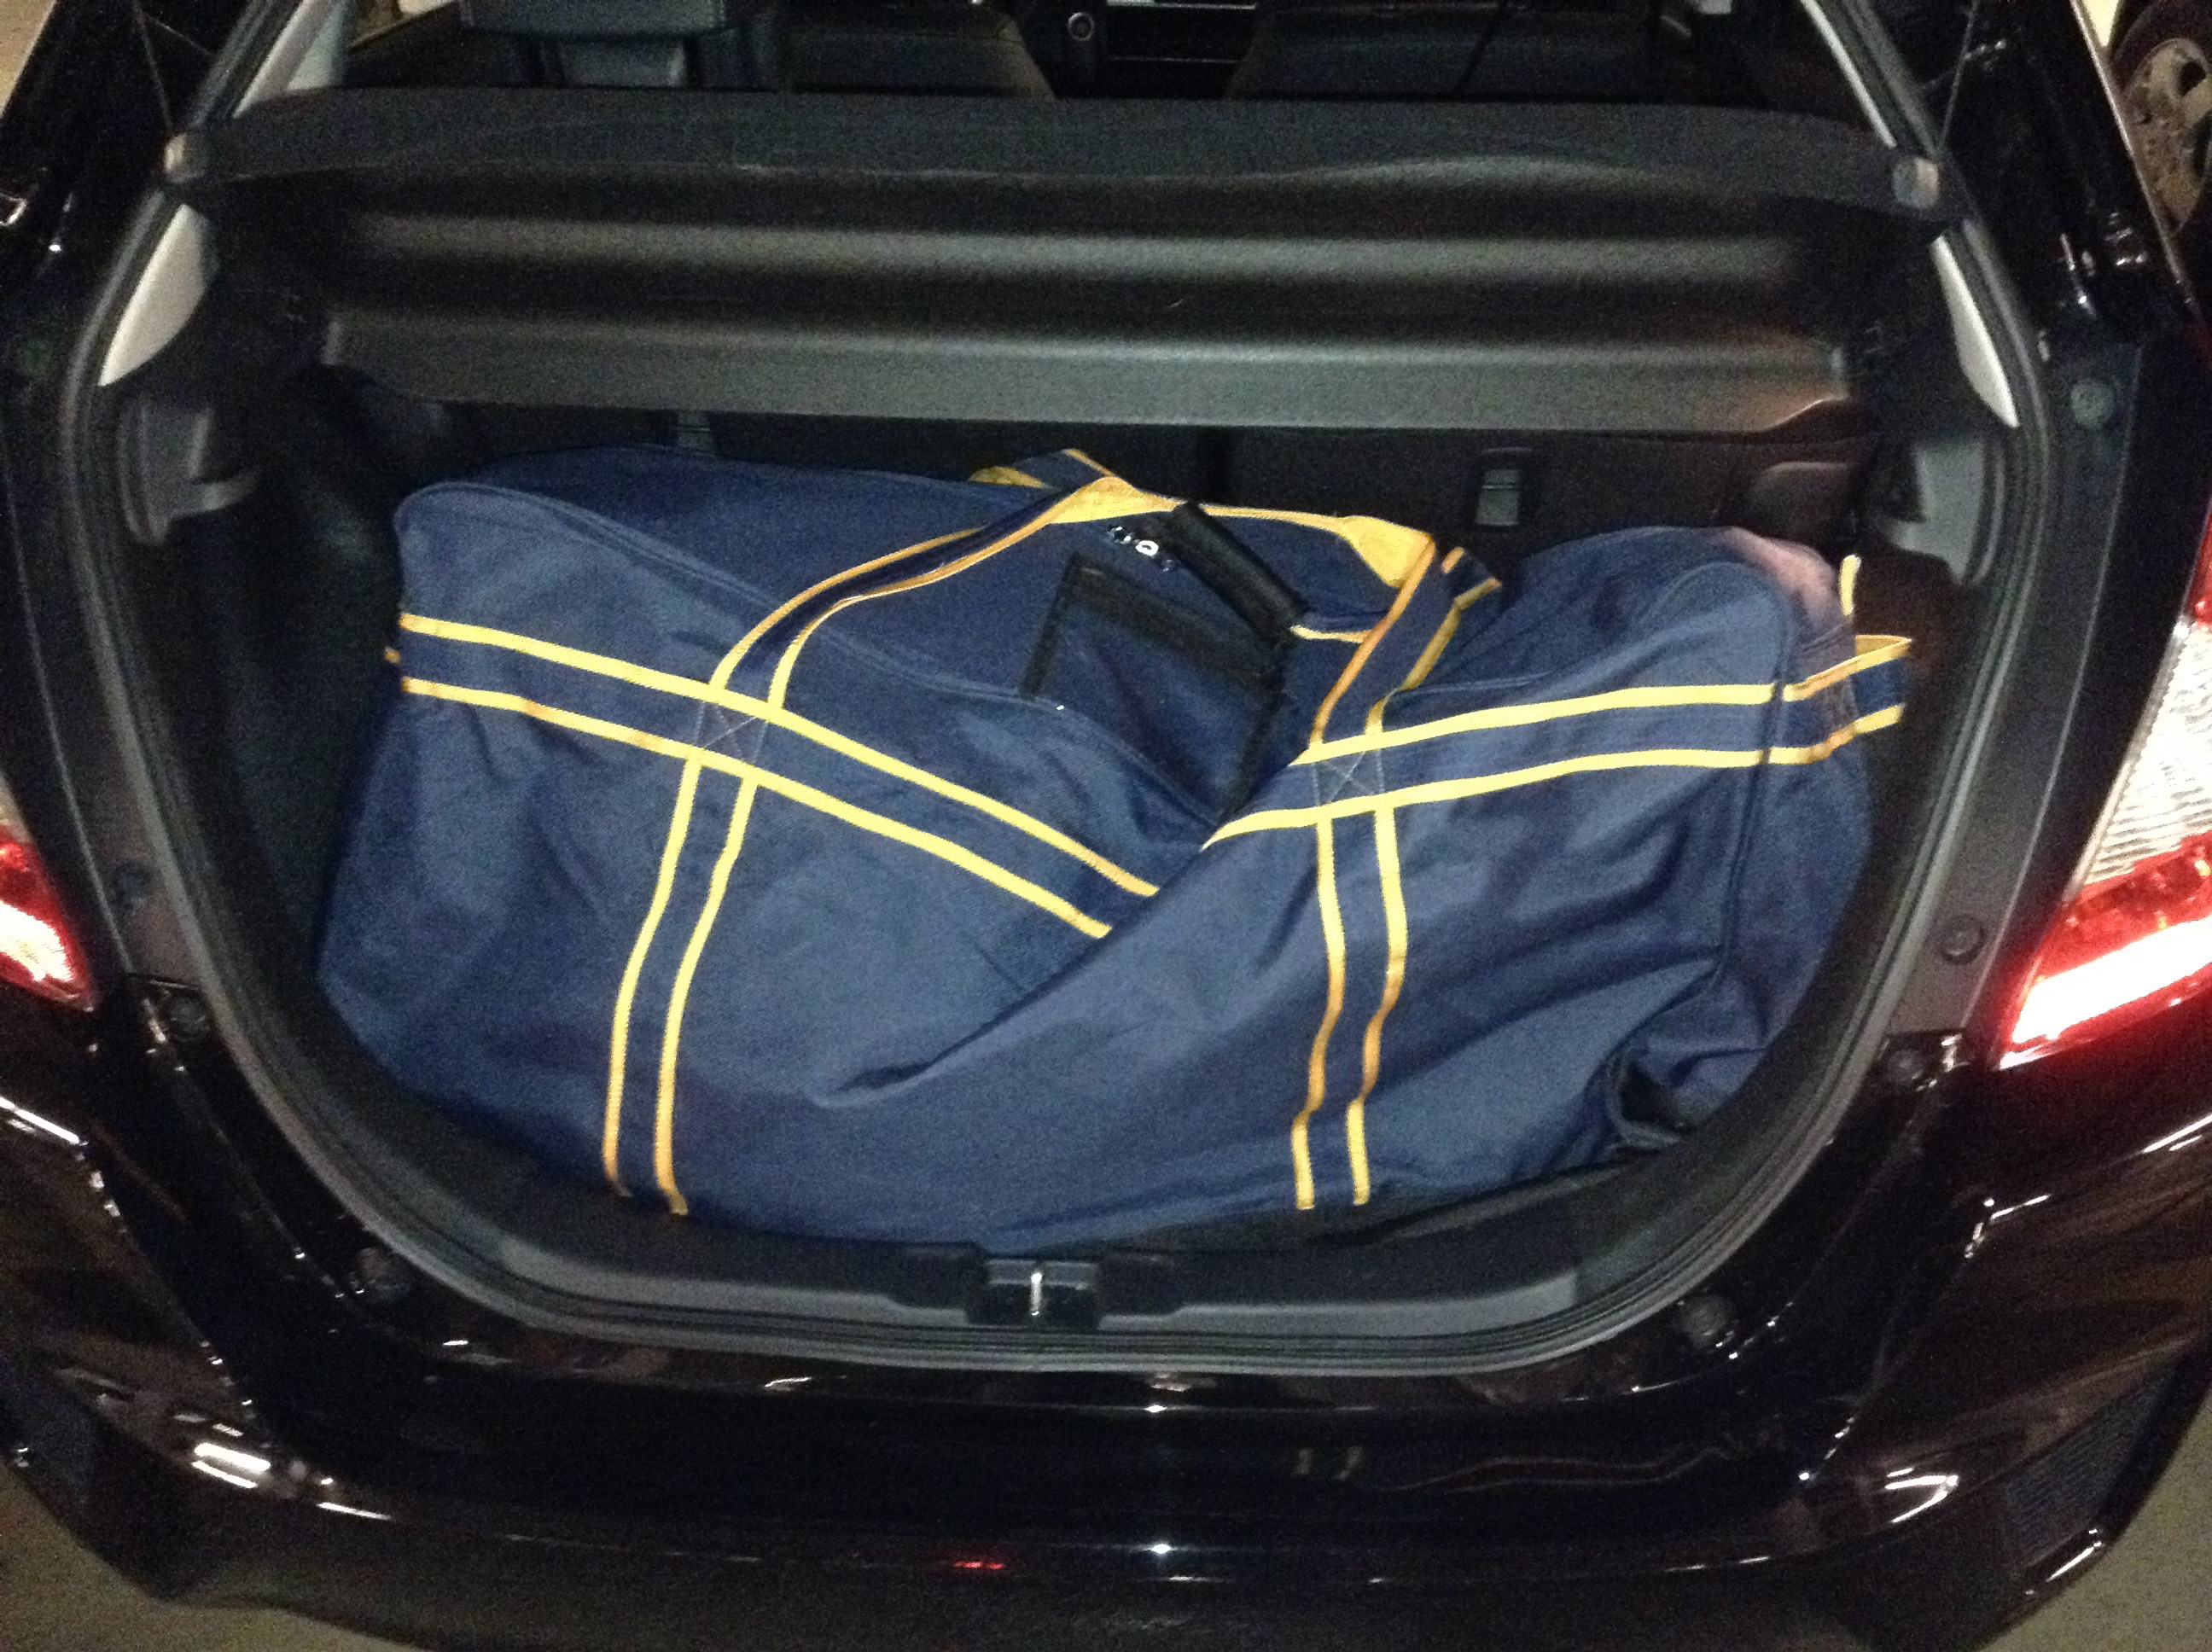 The requisite hockey bag test... rear seats stayed up.